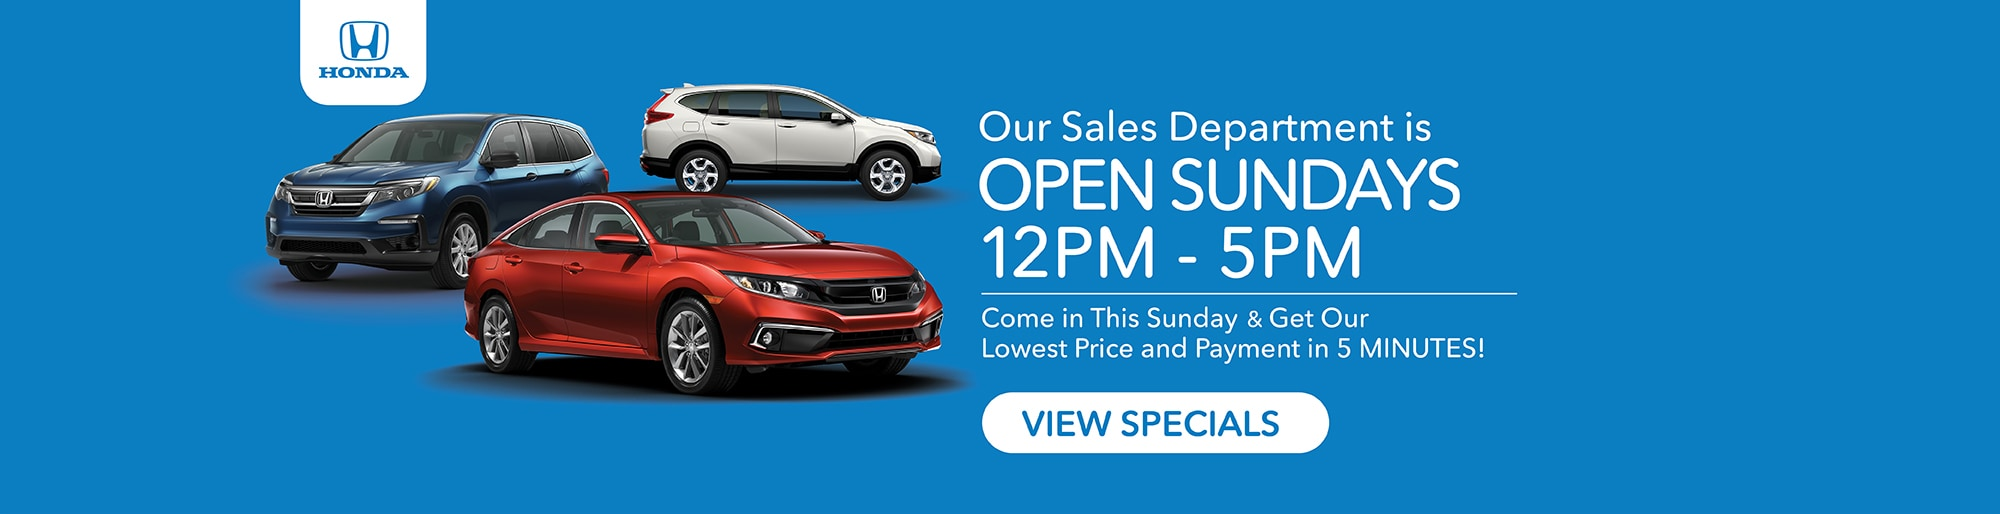 Honda Dealers Ri >> Grieco Honda In Johnston Ri New Honda Dealership